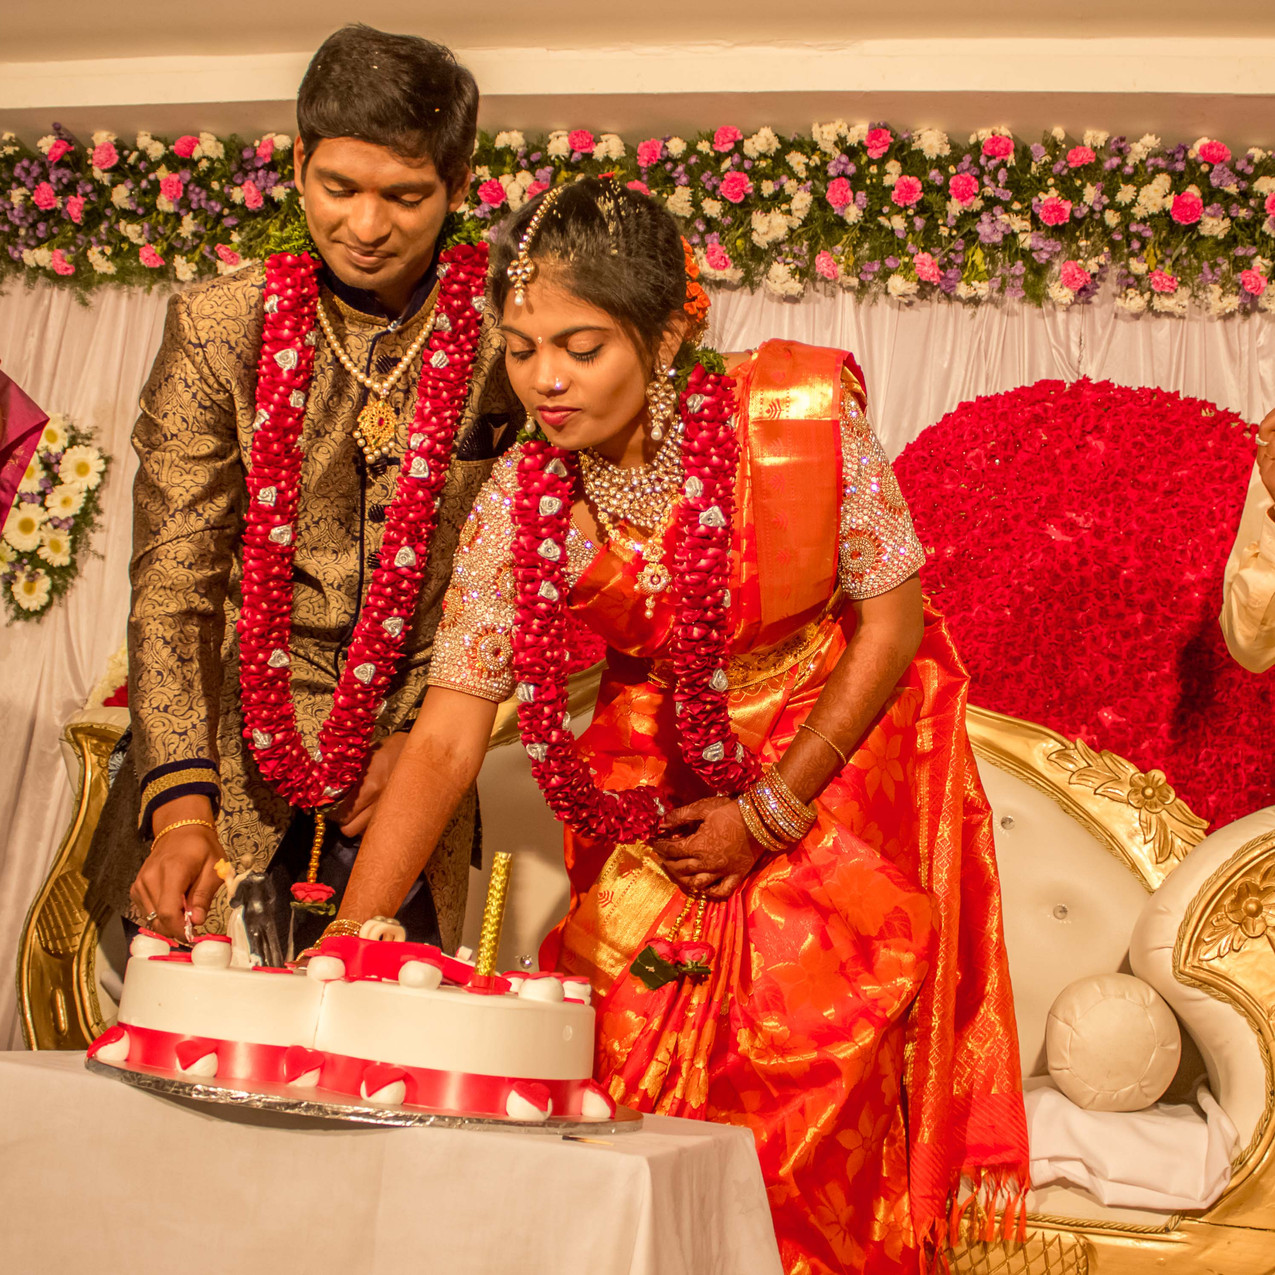 Fairytale Studios_Akshata-Sandeep Engagement_26-Dec-2016_Engagement_52-2